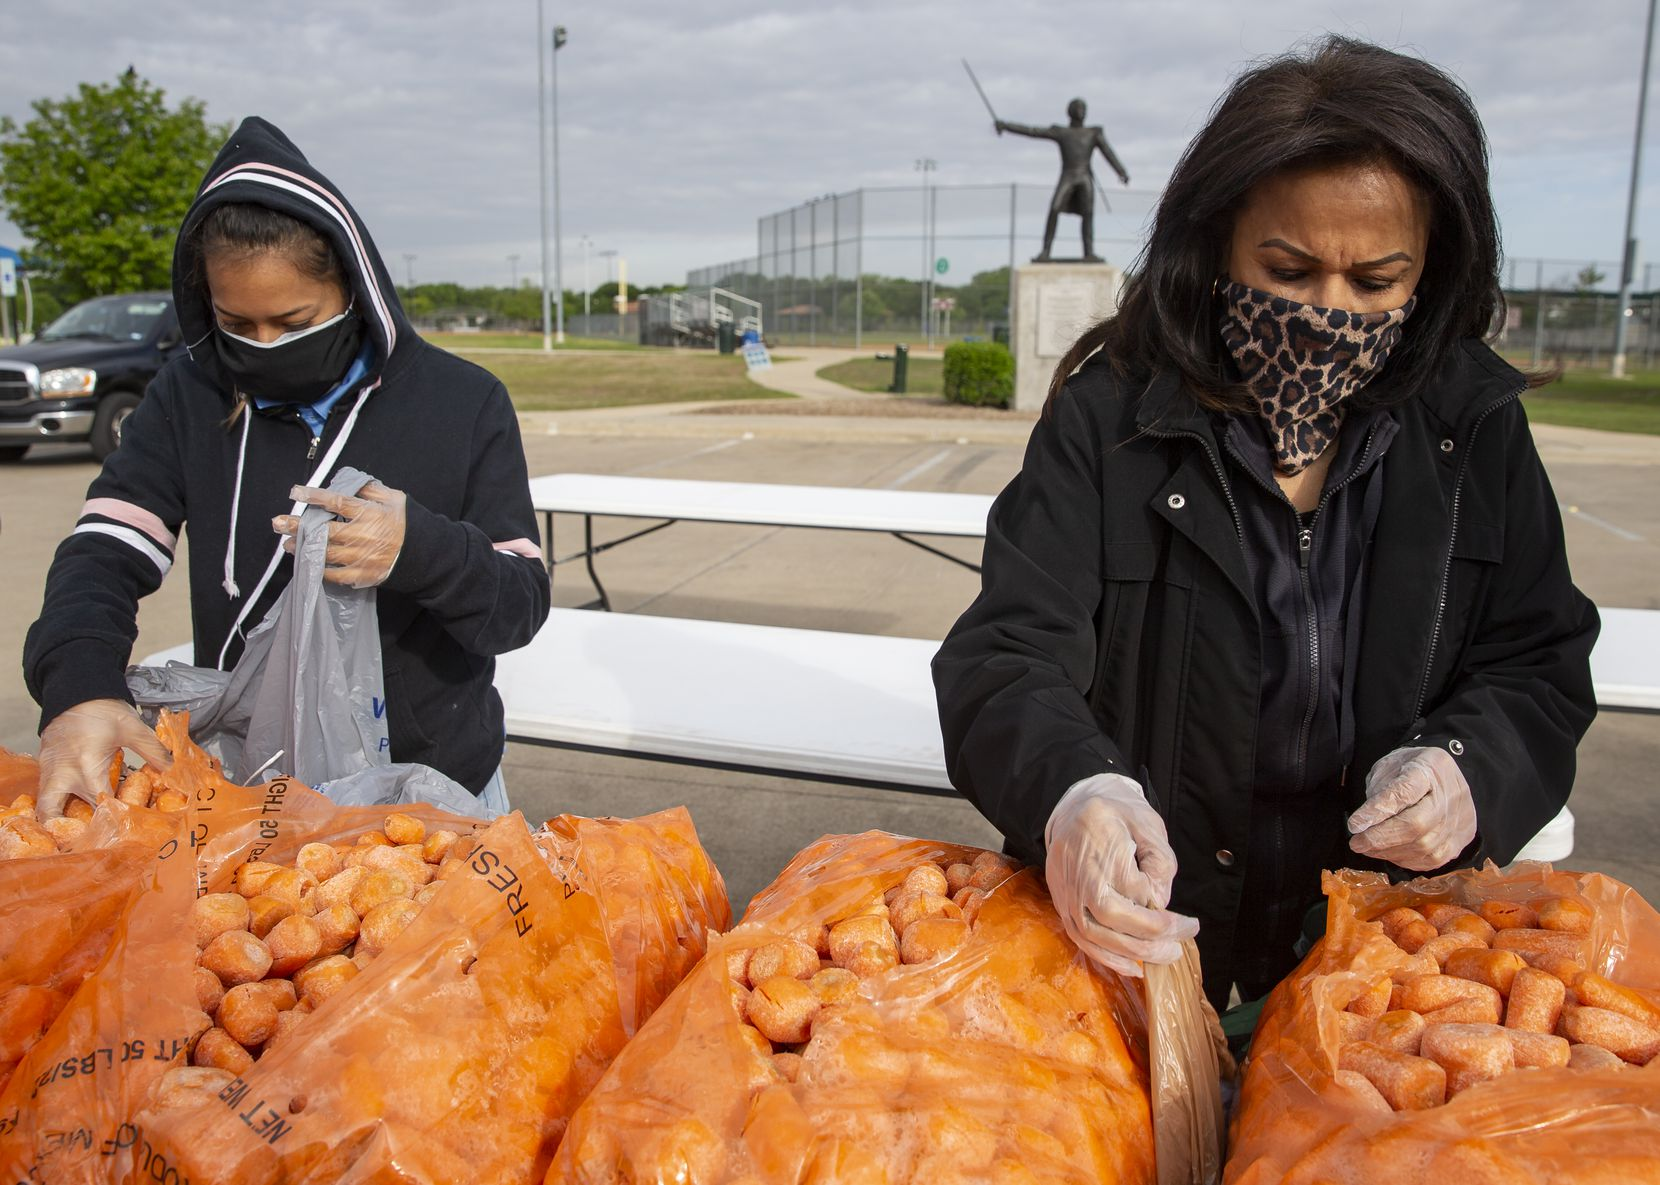 Abby Hernandez, left, and Dolores Dominguez help prepare food to be distributed with the Harvest Food Project Rescue and the Ledbetter Neighborhood Association on April 18, 2020, at Jaycee Zaragoza Park in Dallas.